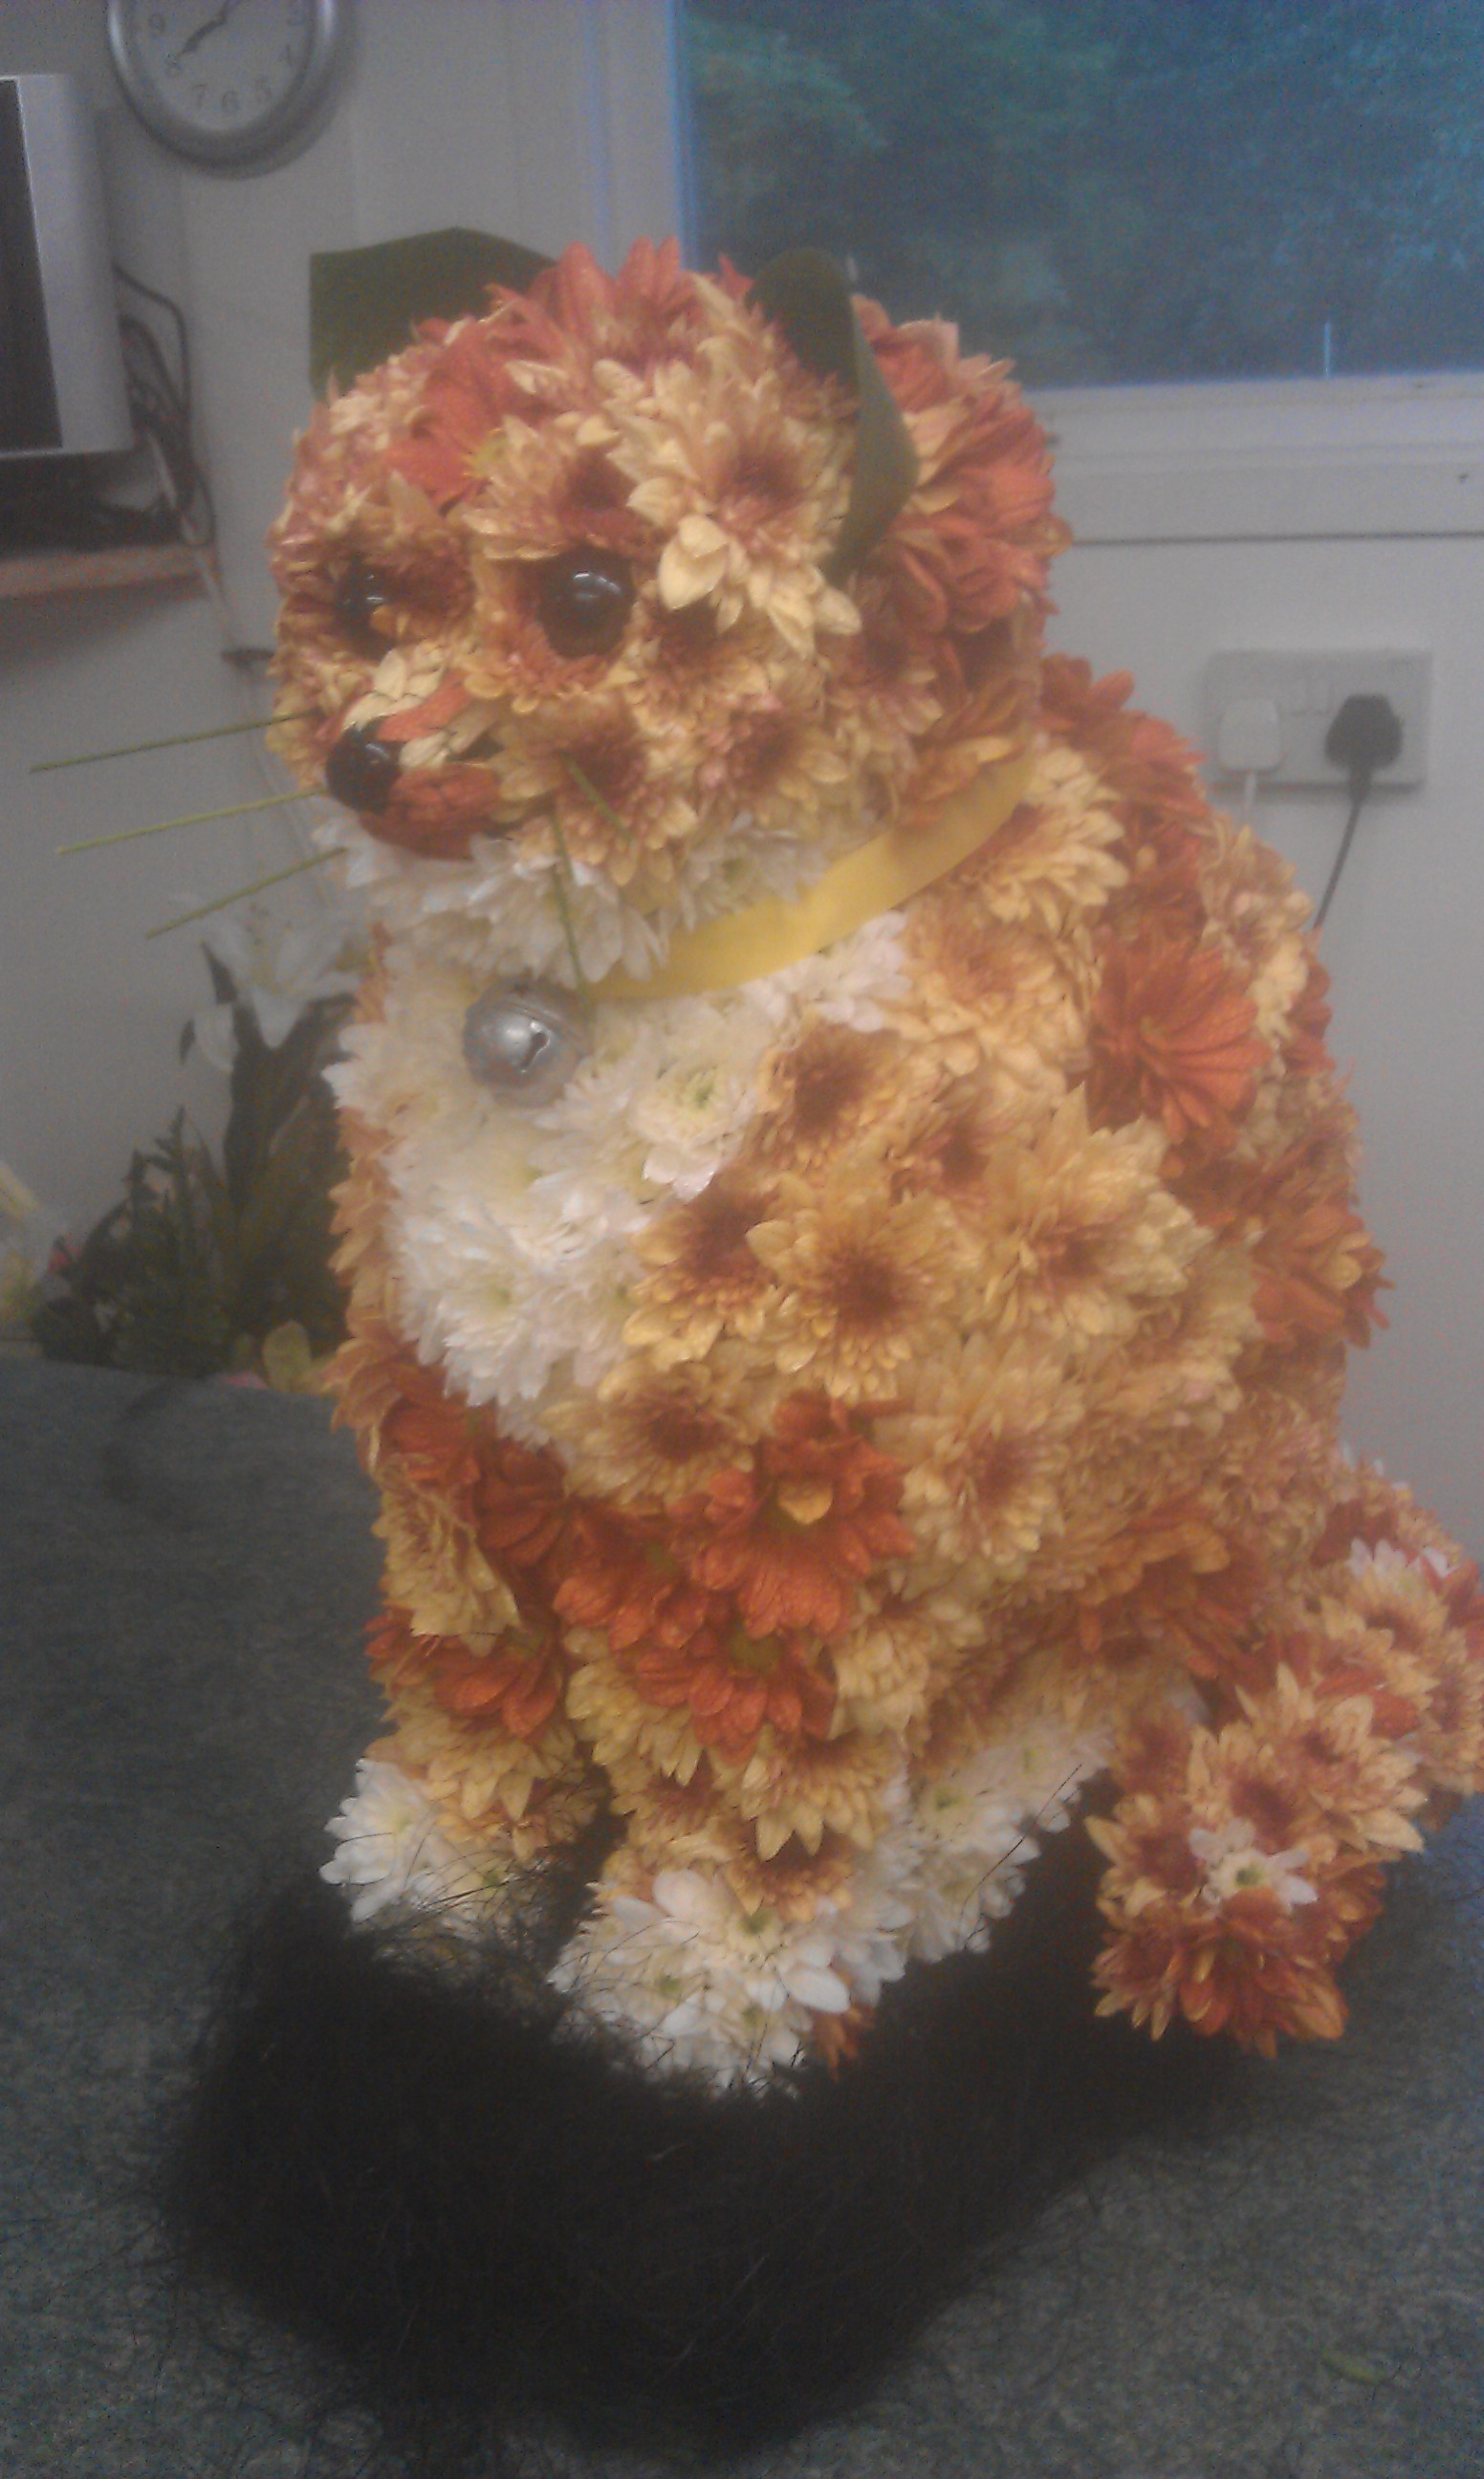 themed floral tributes